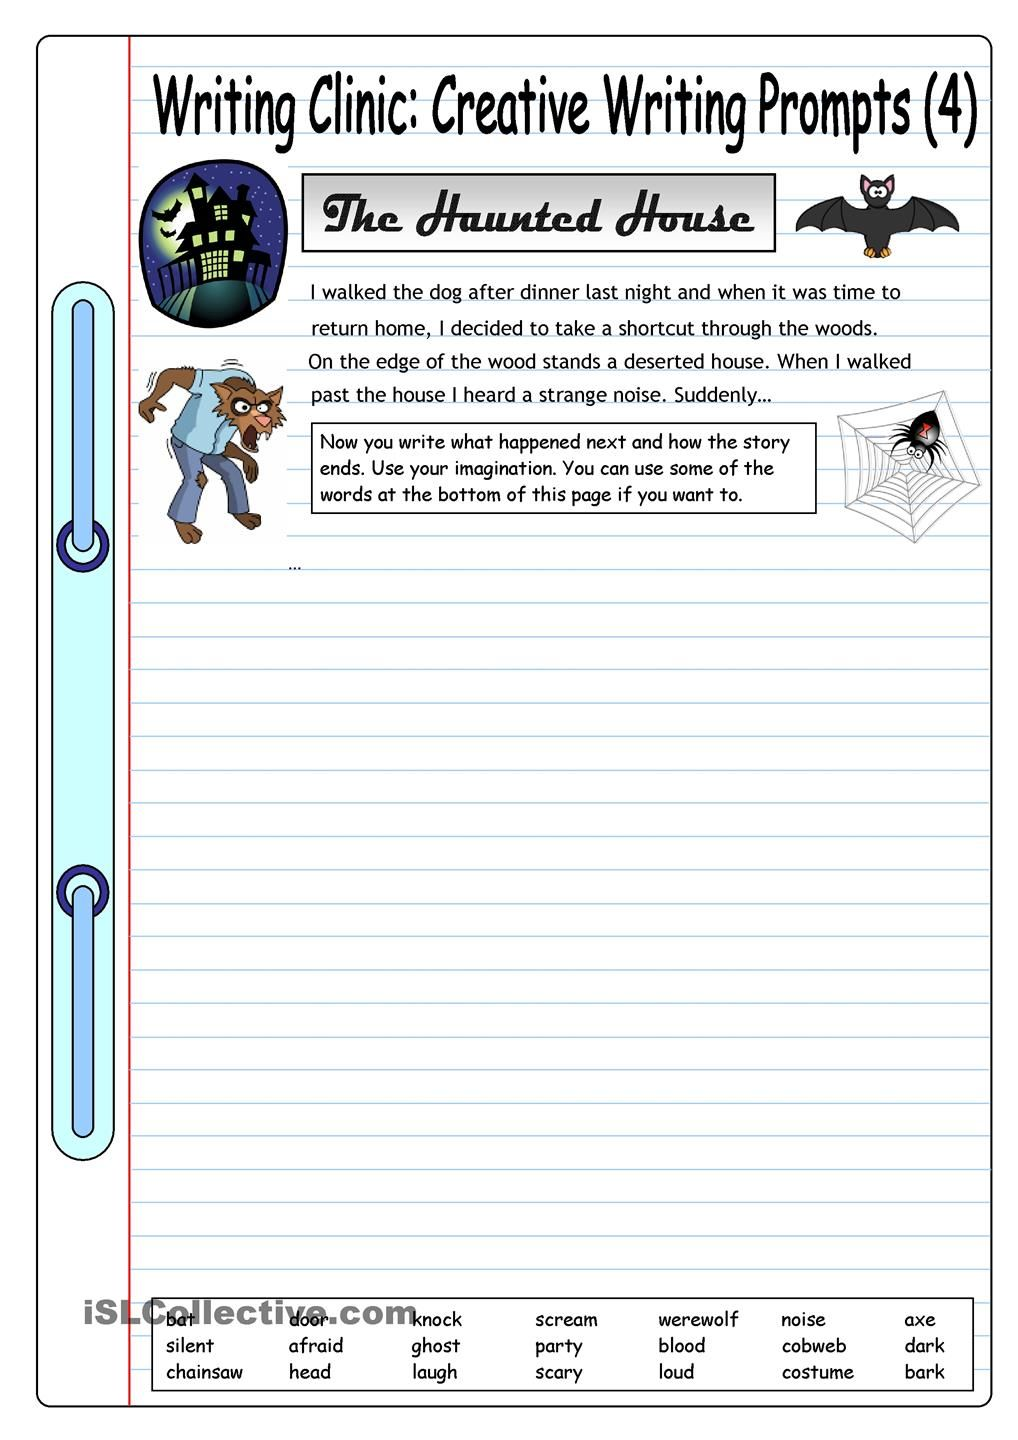 creative writing ghost story form vocabulary grade 3 writing clinicacutes creative writing prompts are designed to provide ideas and to get students writing ease this worksheet comes a story starter and